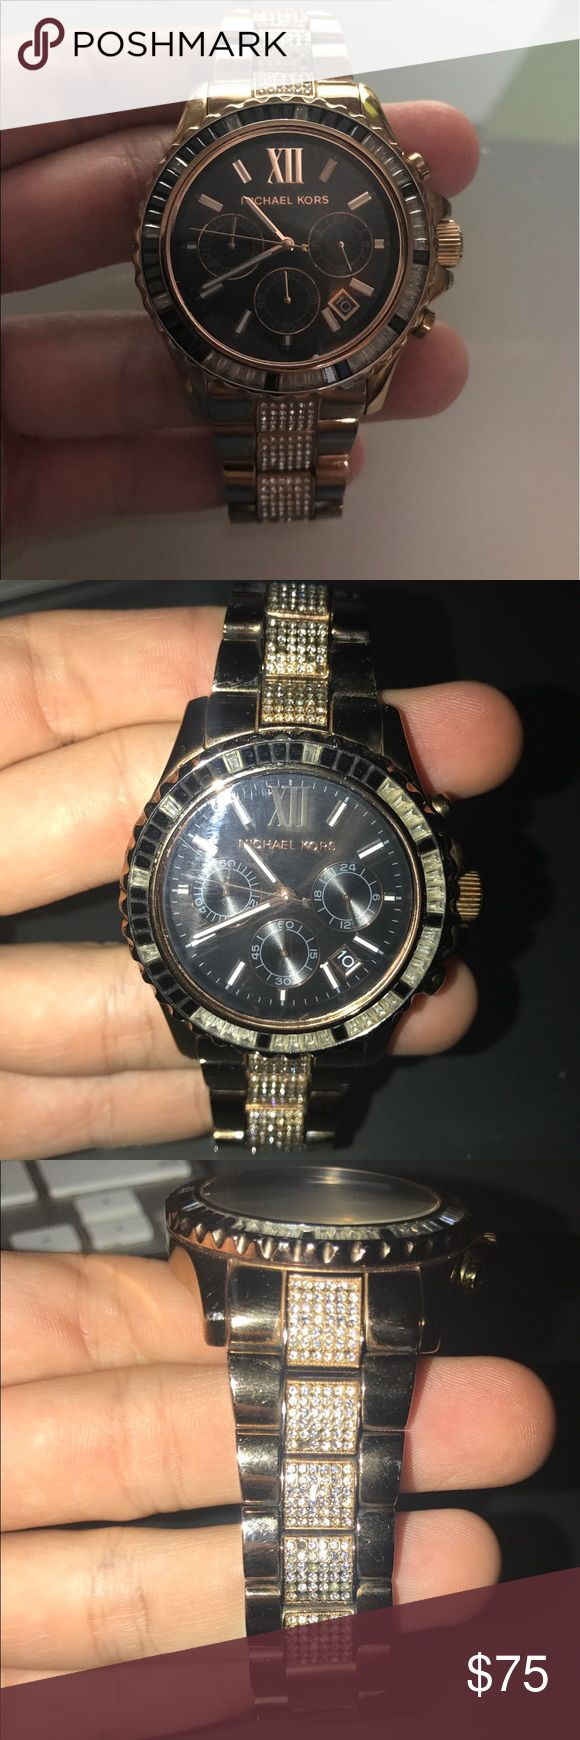 Michael Kors rose gold and black Glitz watch Some stones fell out. Color is slightly darker than average rose gold. Works well. Michael Kors Accessories Watches